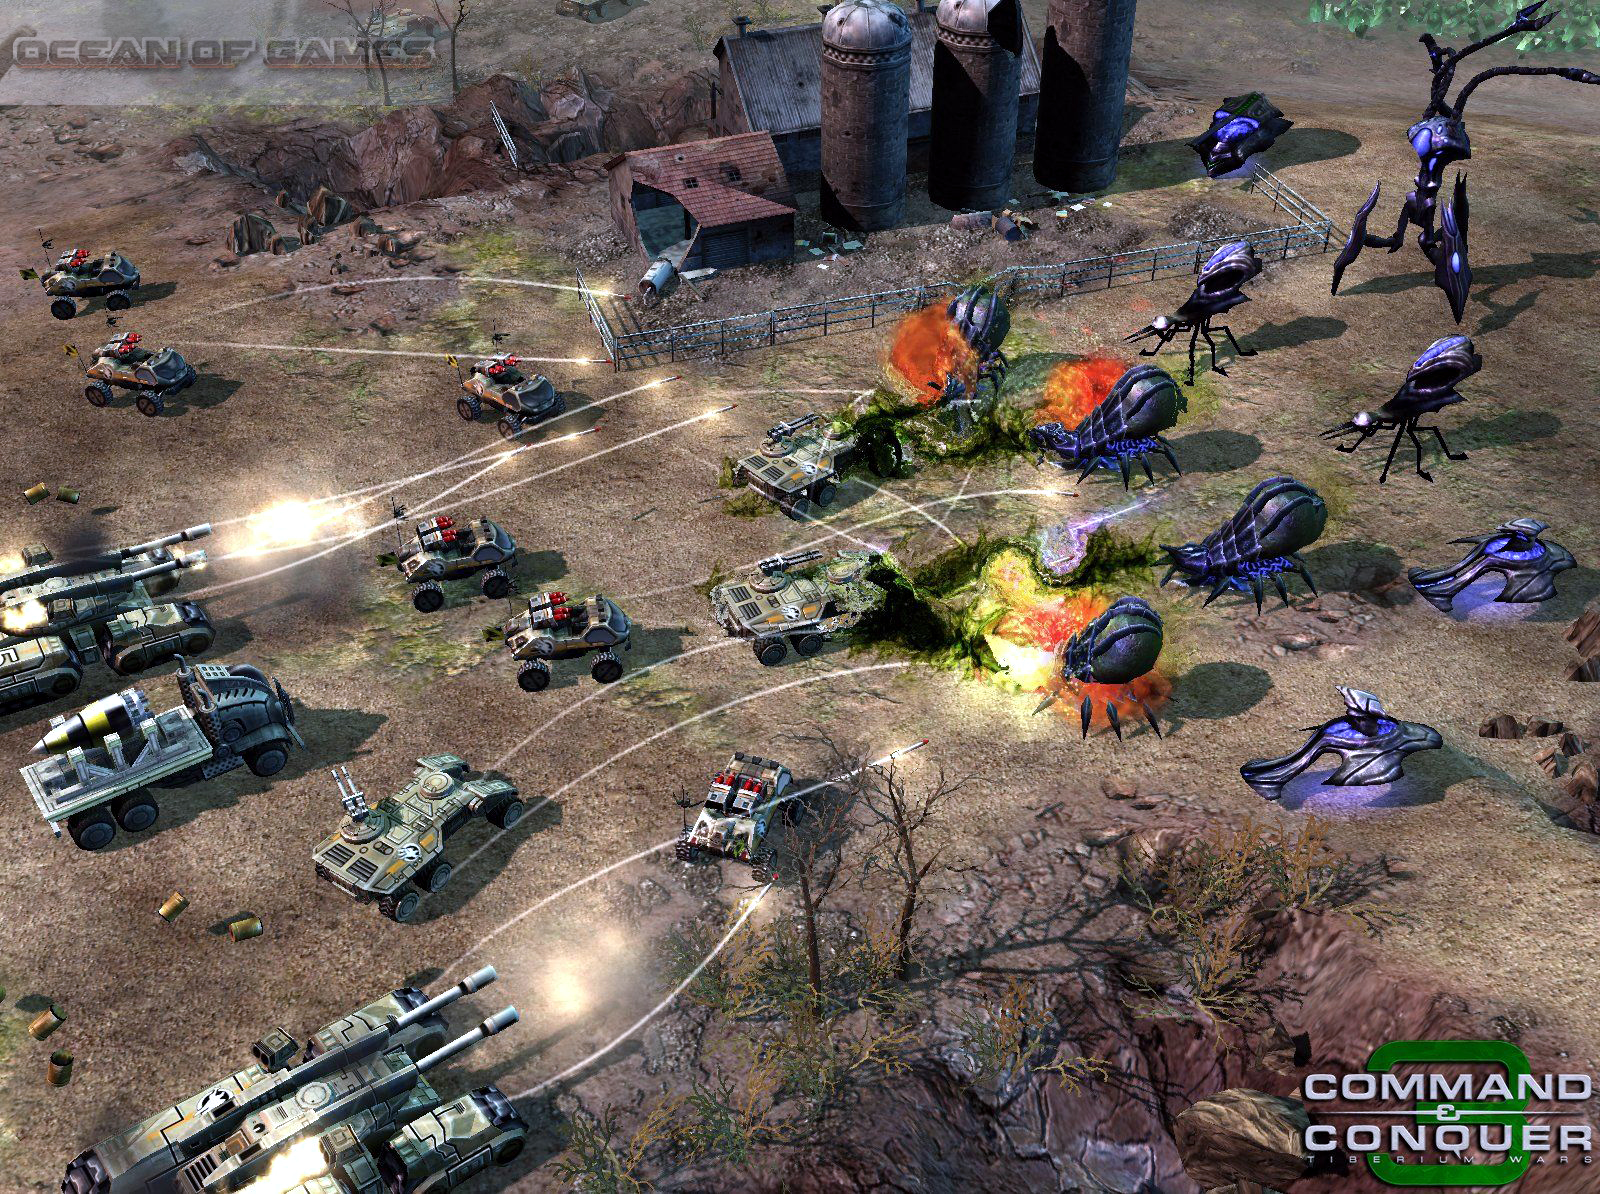 Command and conquer 3 tiberium wars mac system requirements